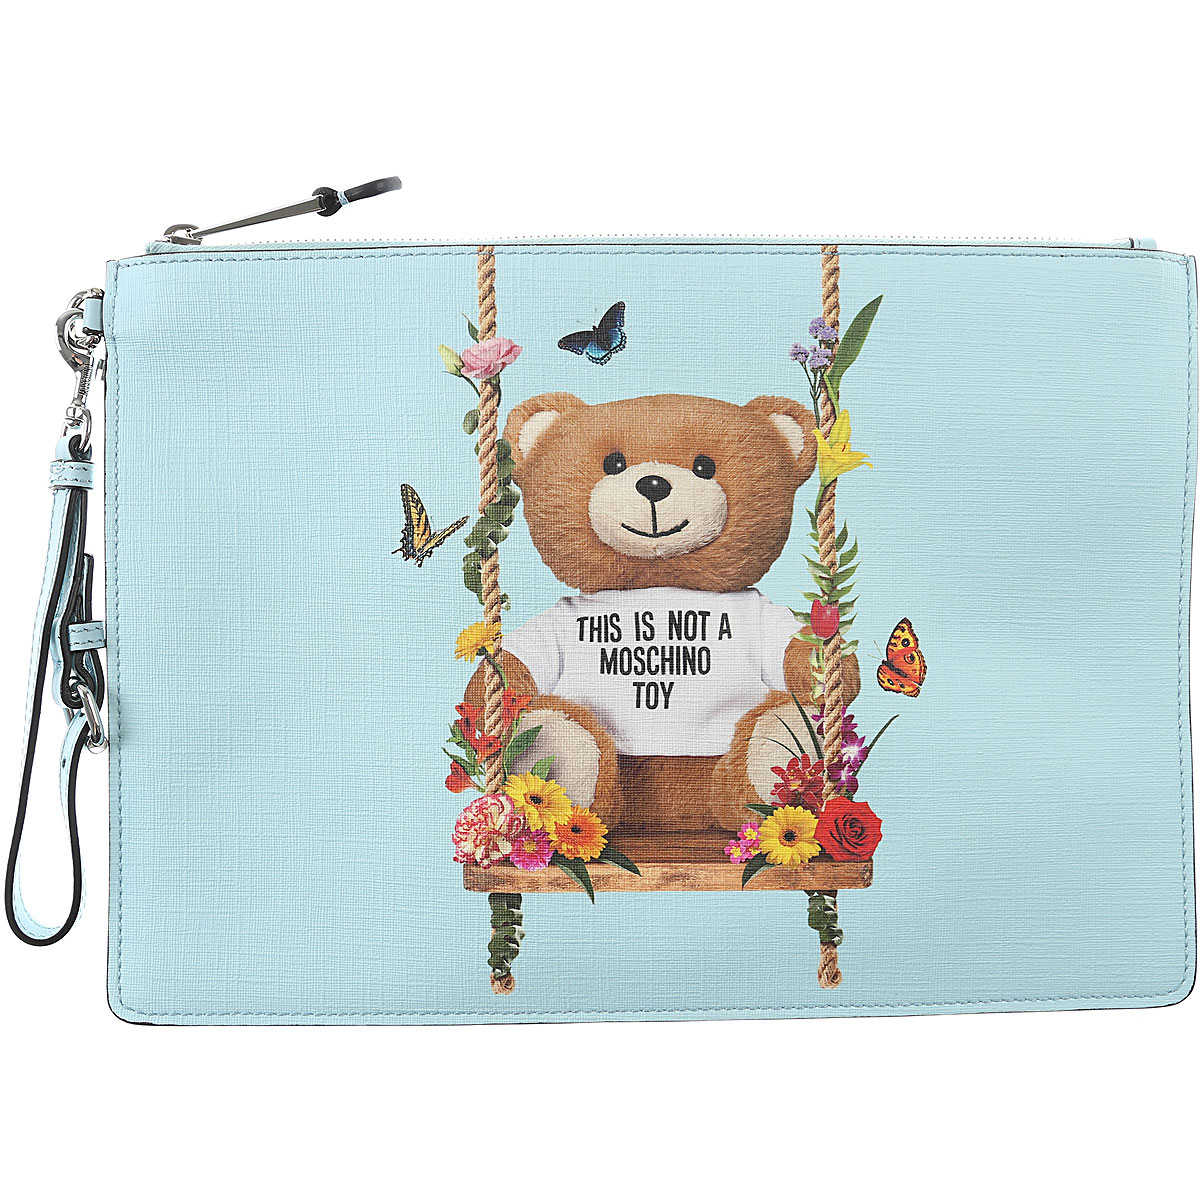 Moschino Women's Pouch in Outlet celeste USA - GOOFASH